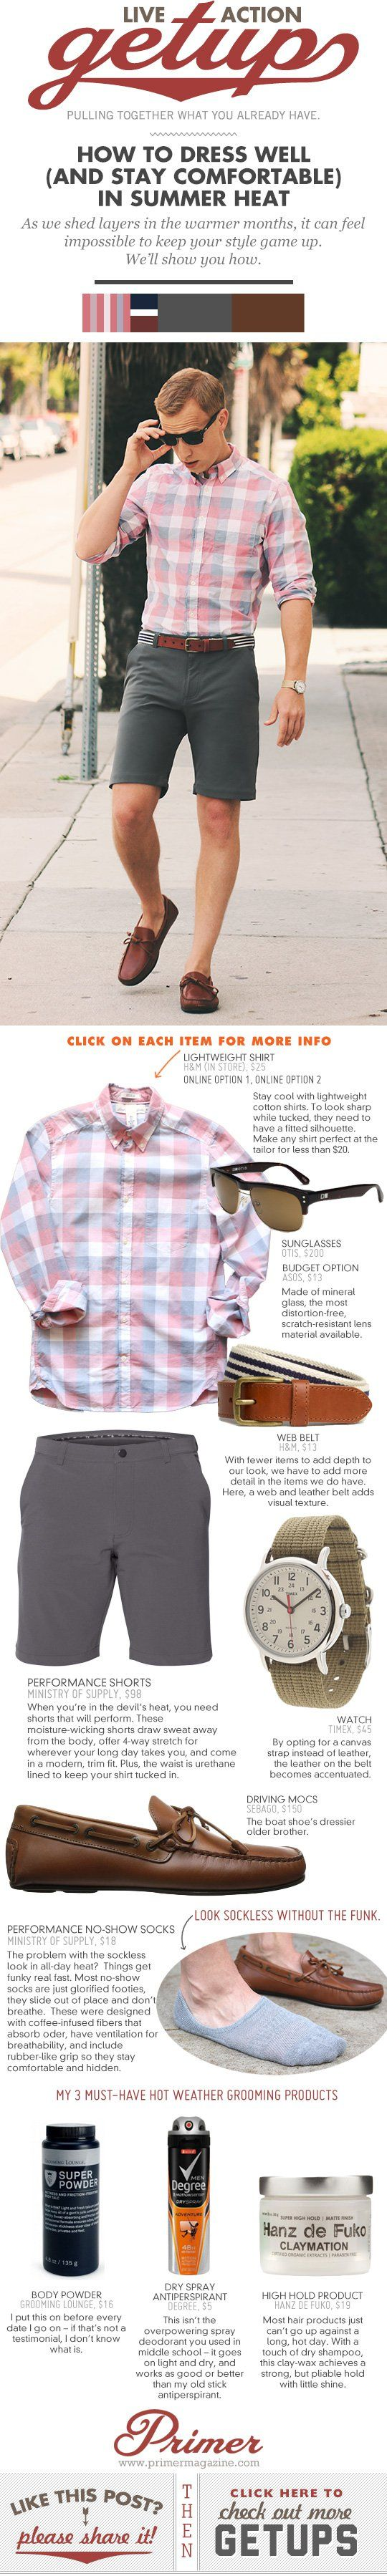 Live-Action Getup: How to Dress Well (and Stay Comfortable) in Summer Heat   Primer